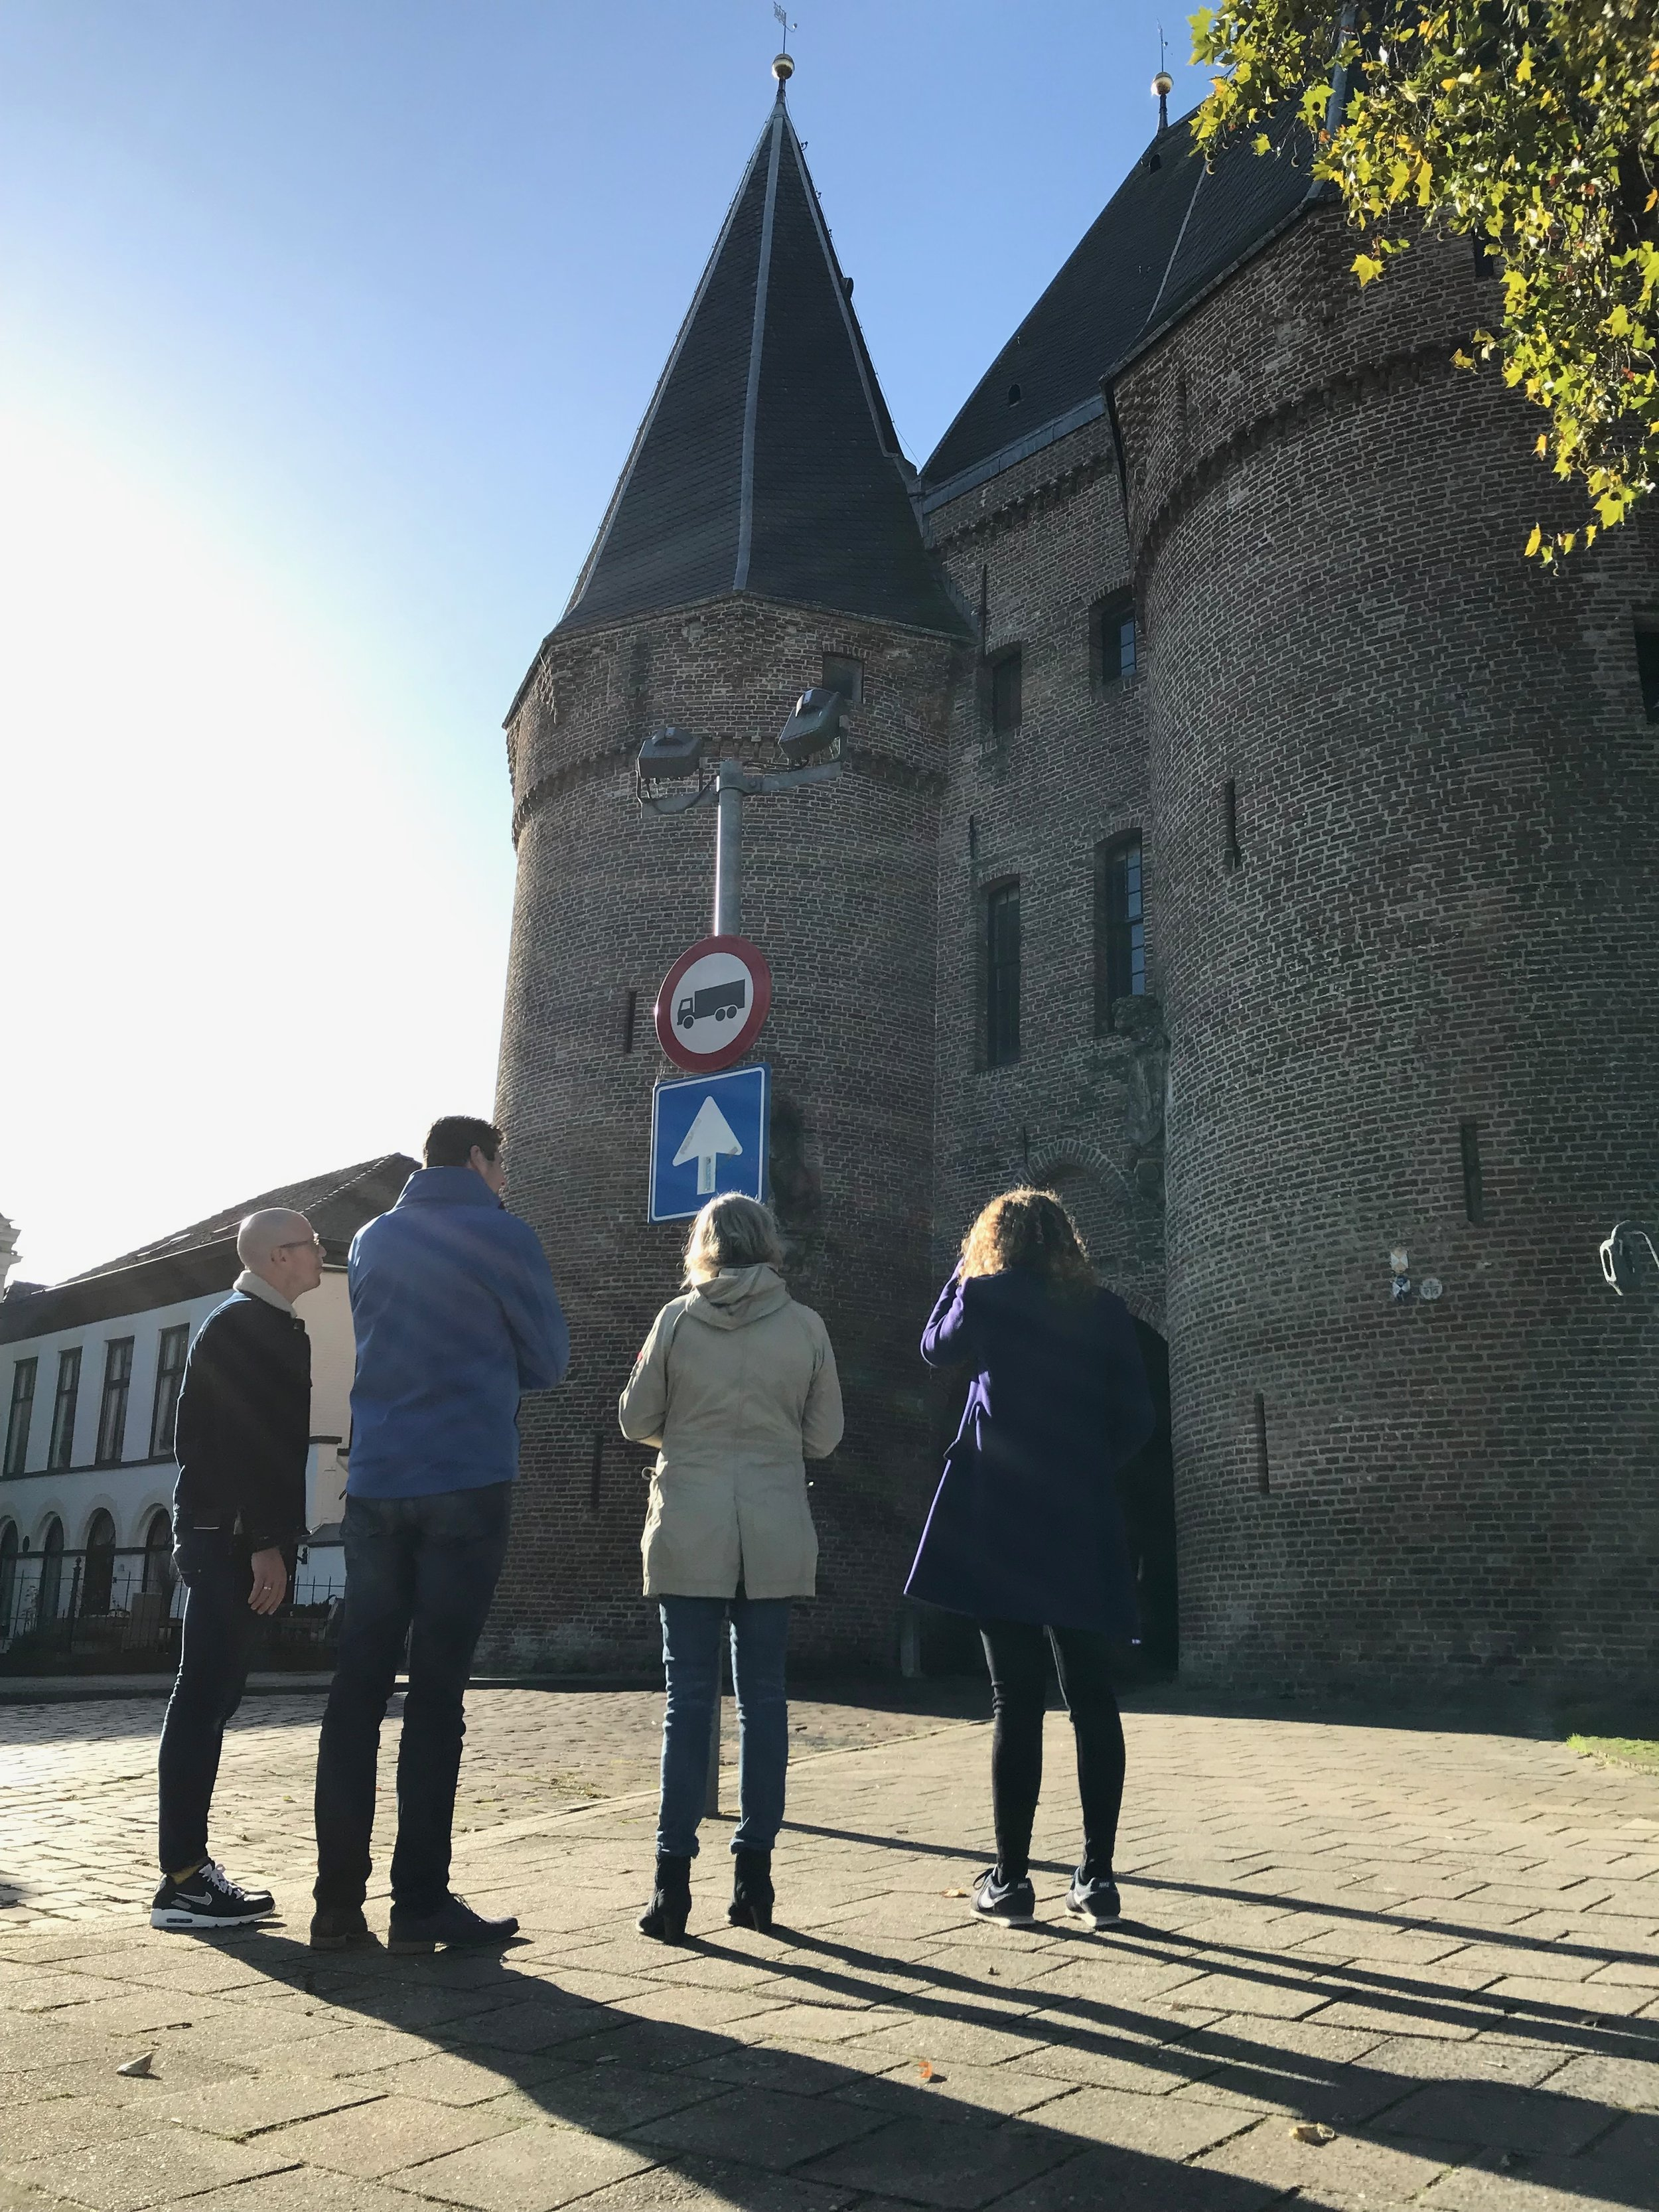 Local guide Lucas vertelt over een poort